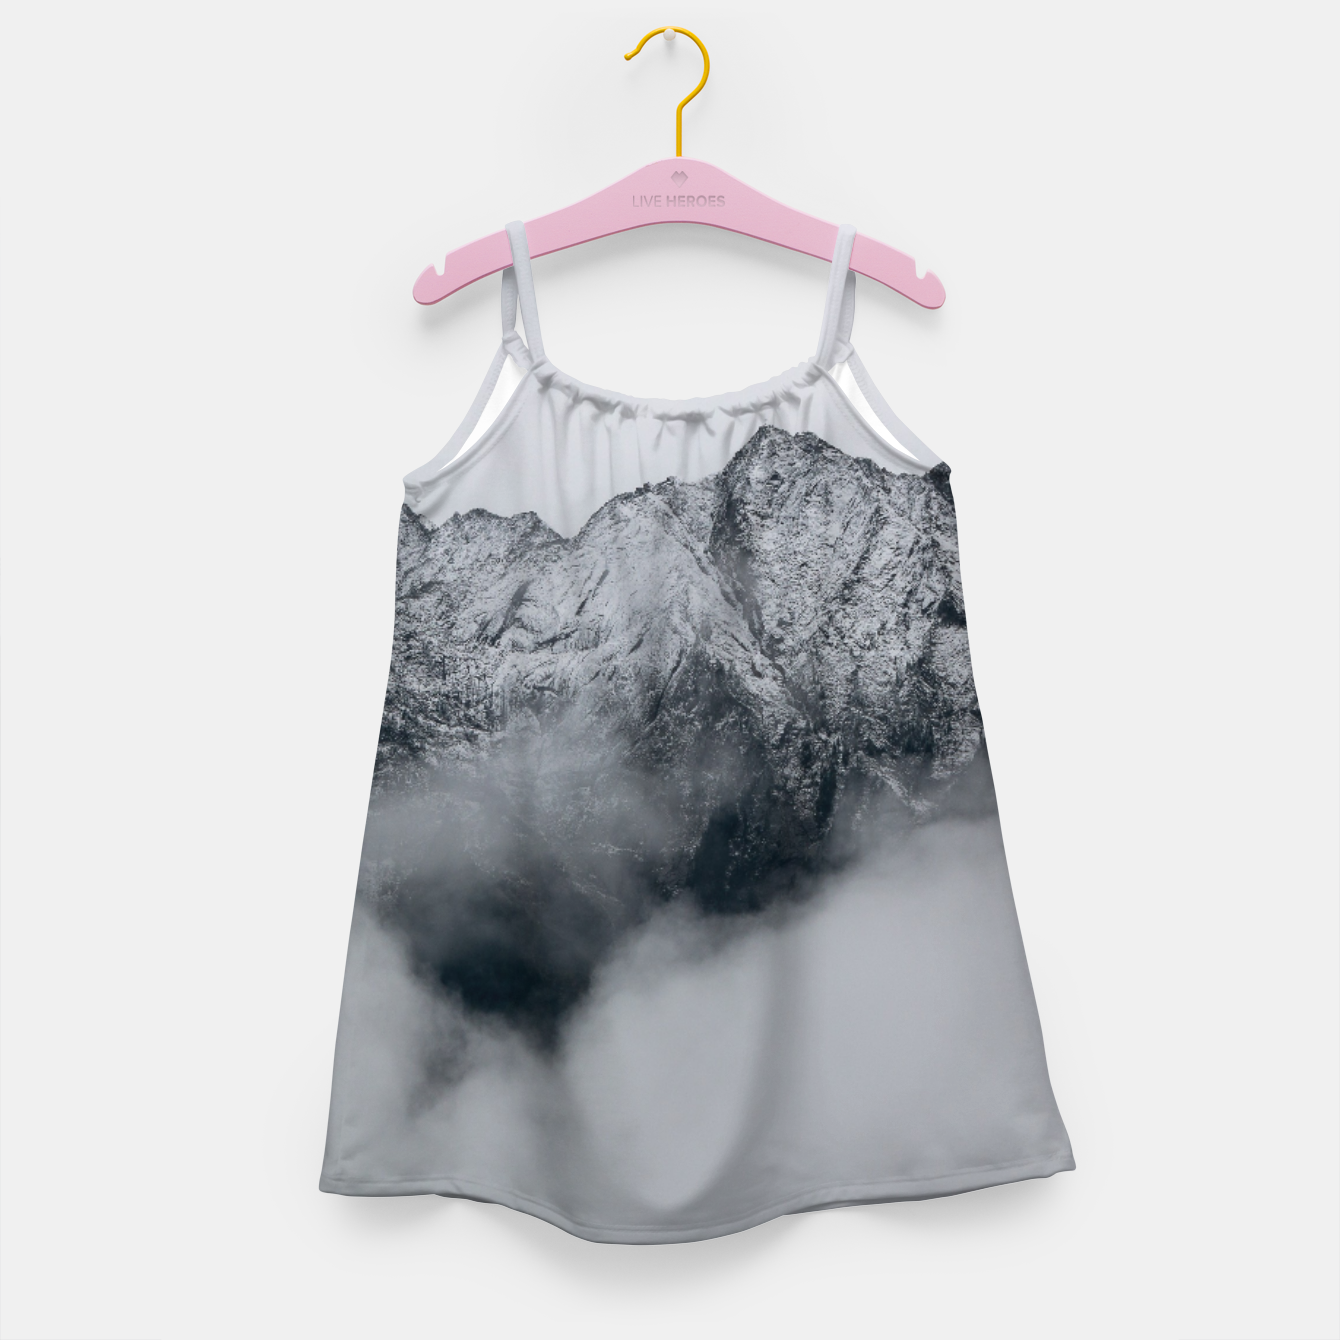 Image of Winter Is Here - Misty Black Rocks Girl's dress - Live Heroes